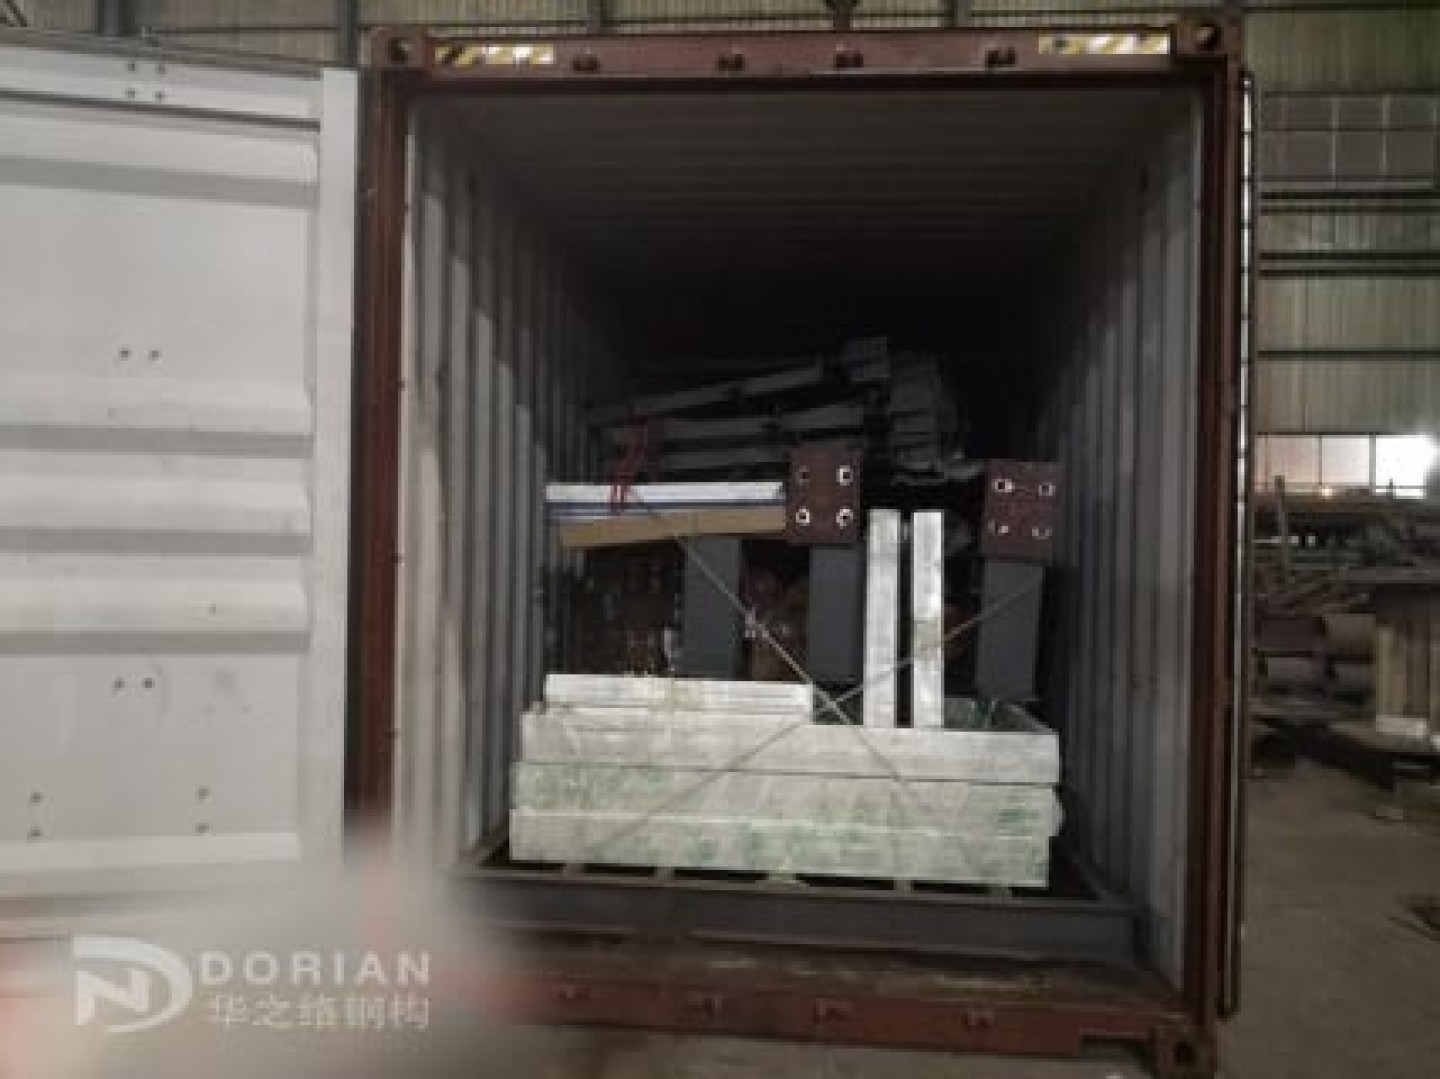 dorian-prefab-steel-building-ready-shipping-to-cote-divoire-3